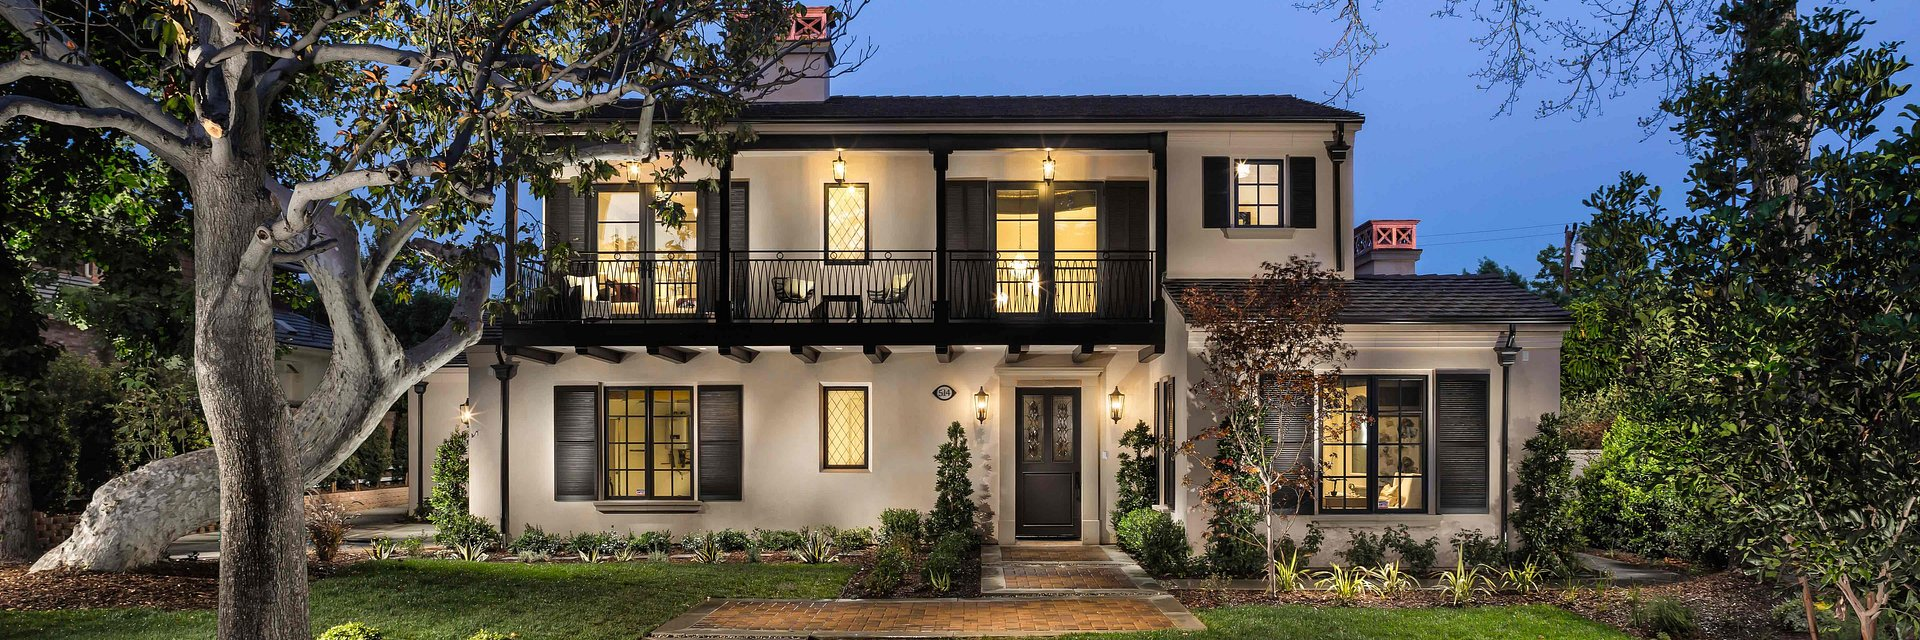 Coldwell Banker Residential Brokerage Lists Arcadia Property for $3.38 Million